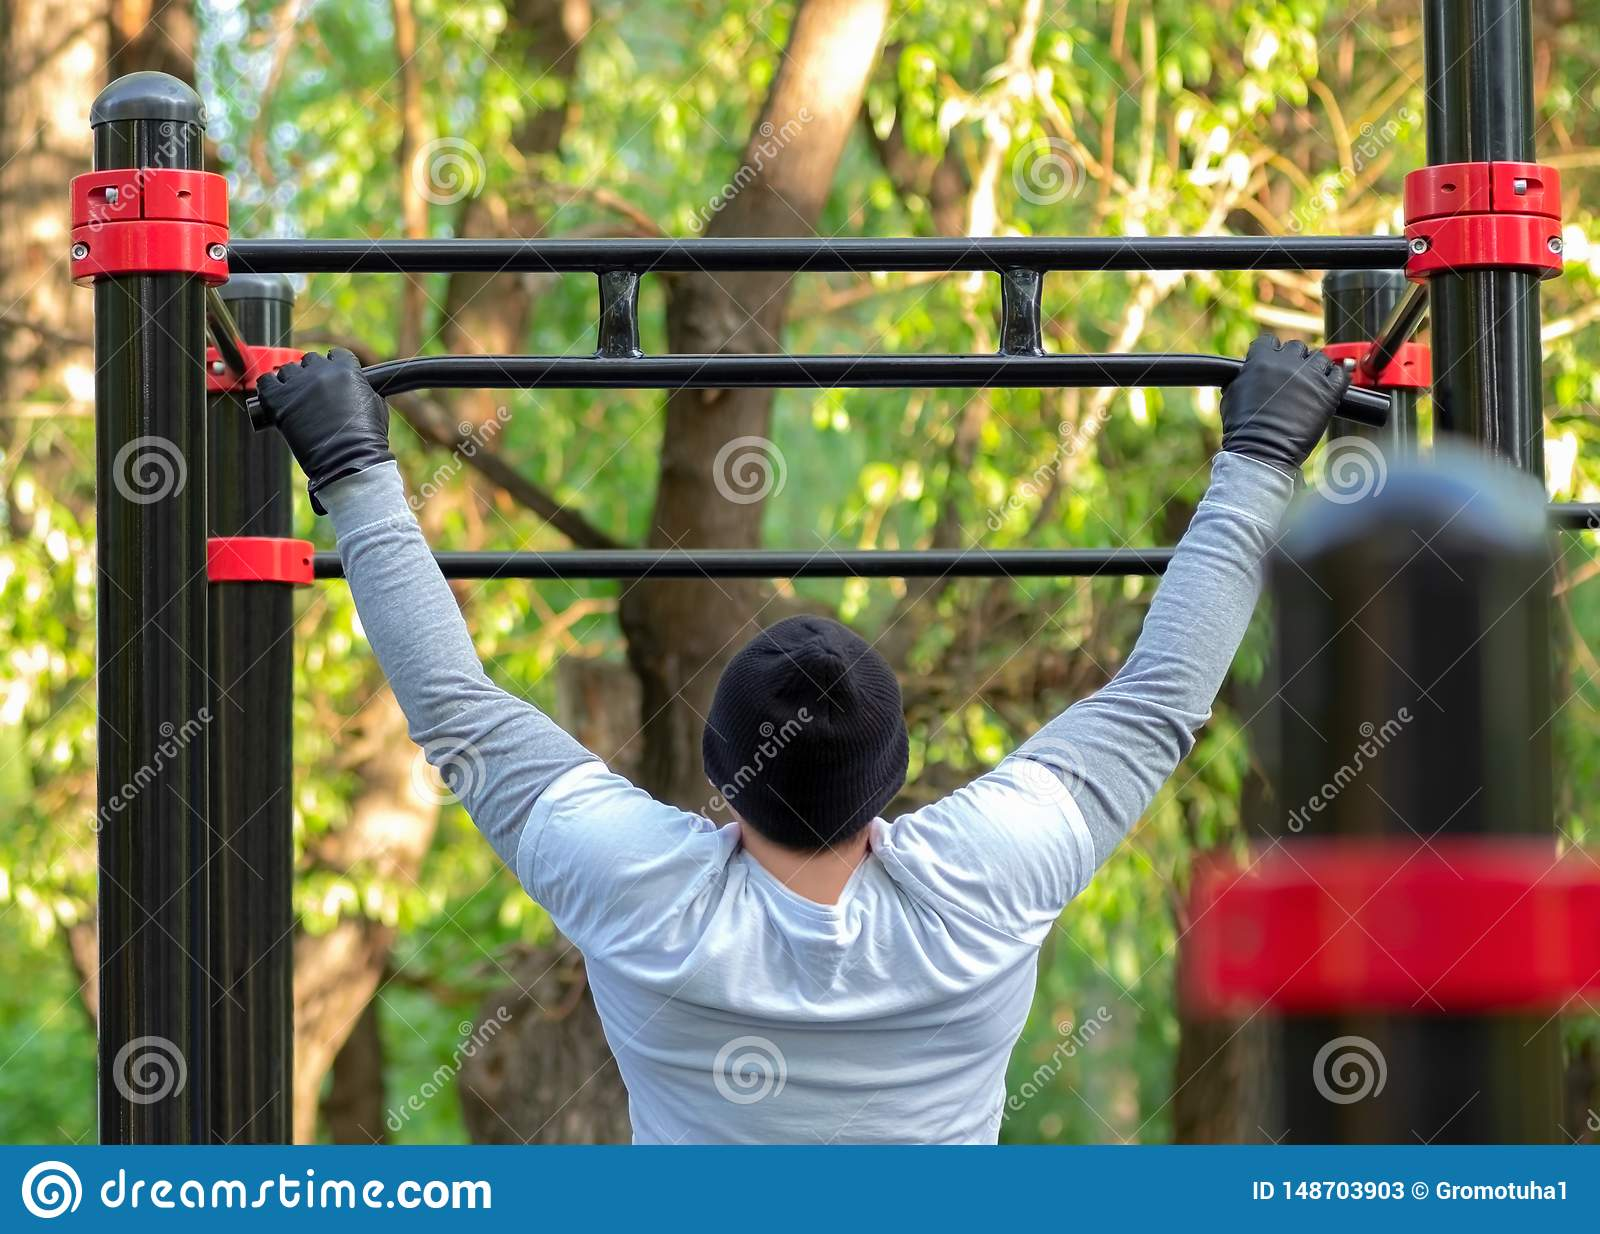 A young man performs a sports exercise pulling on the simulator crossbar. Outdoor training develops the strength of the back